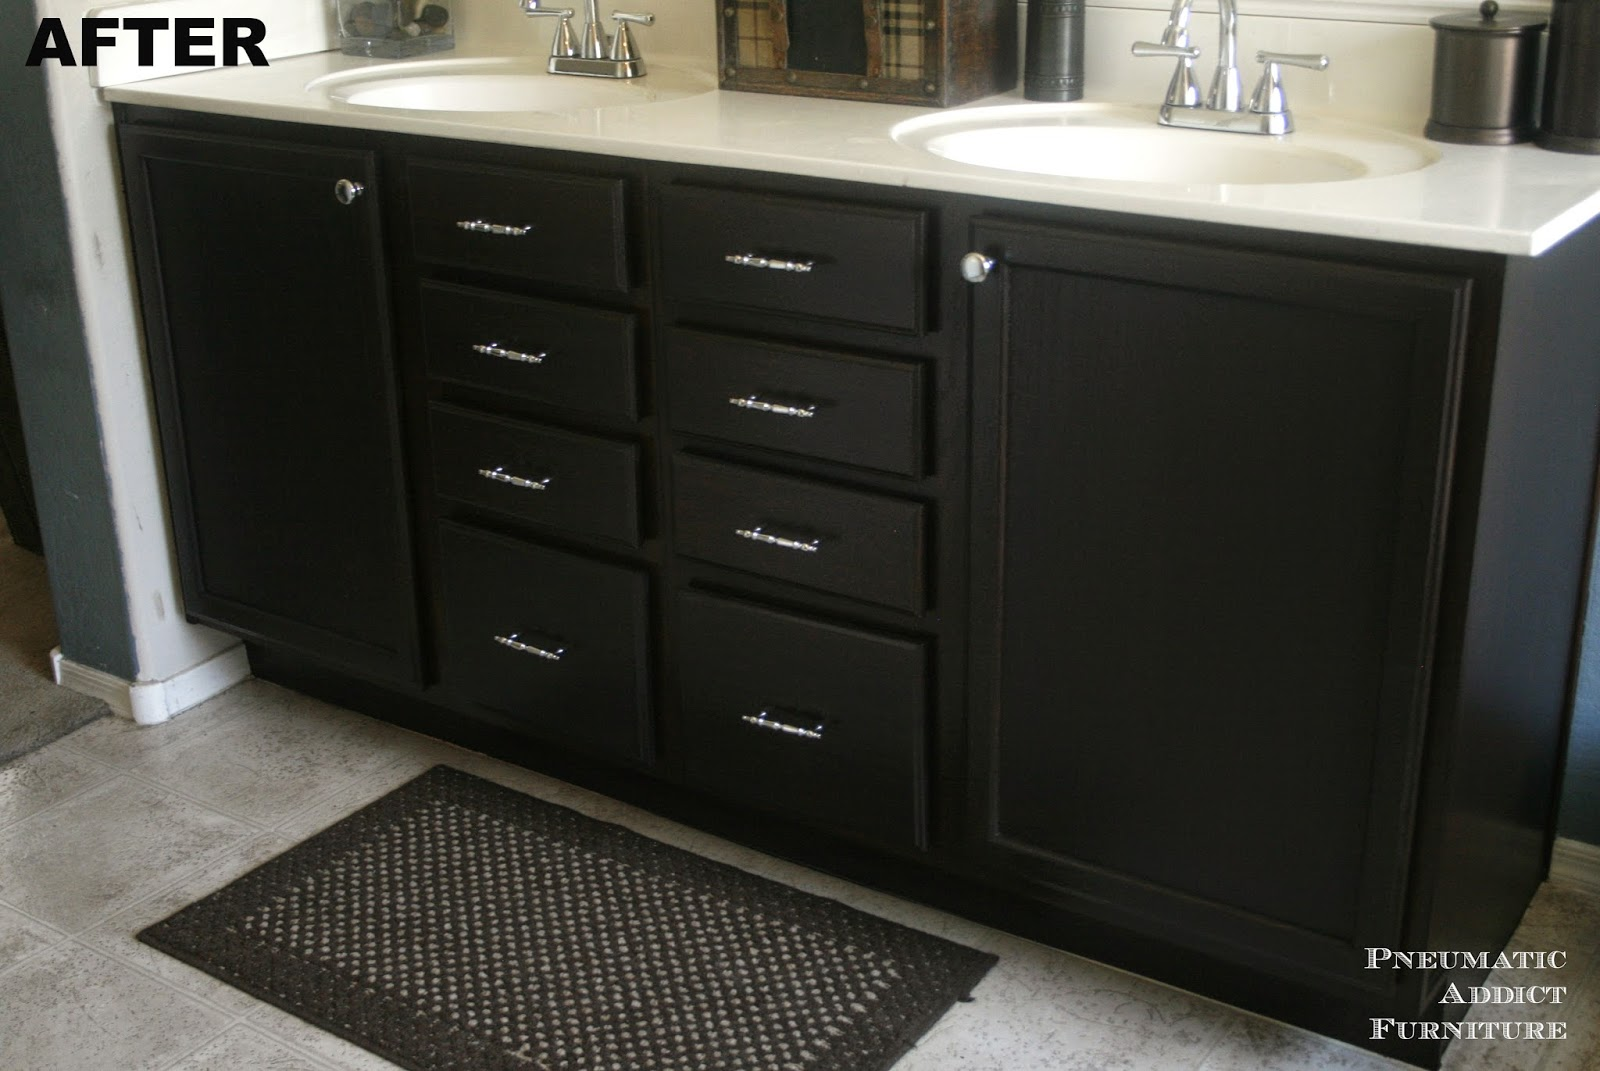 Pneumatic Addict : Darken Cabinets WITHOUT Stripping the Existing ...